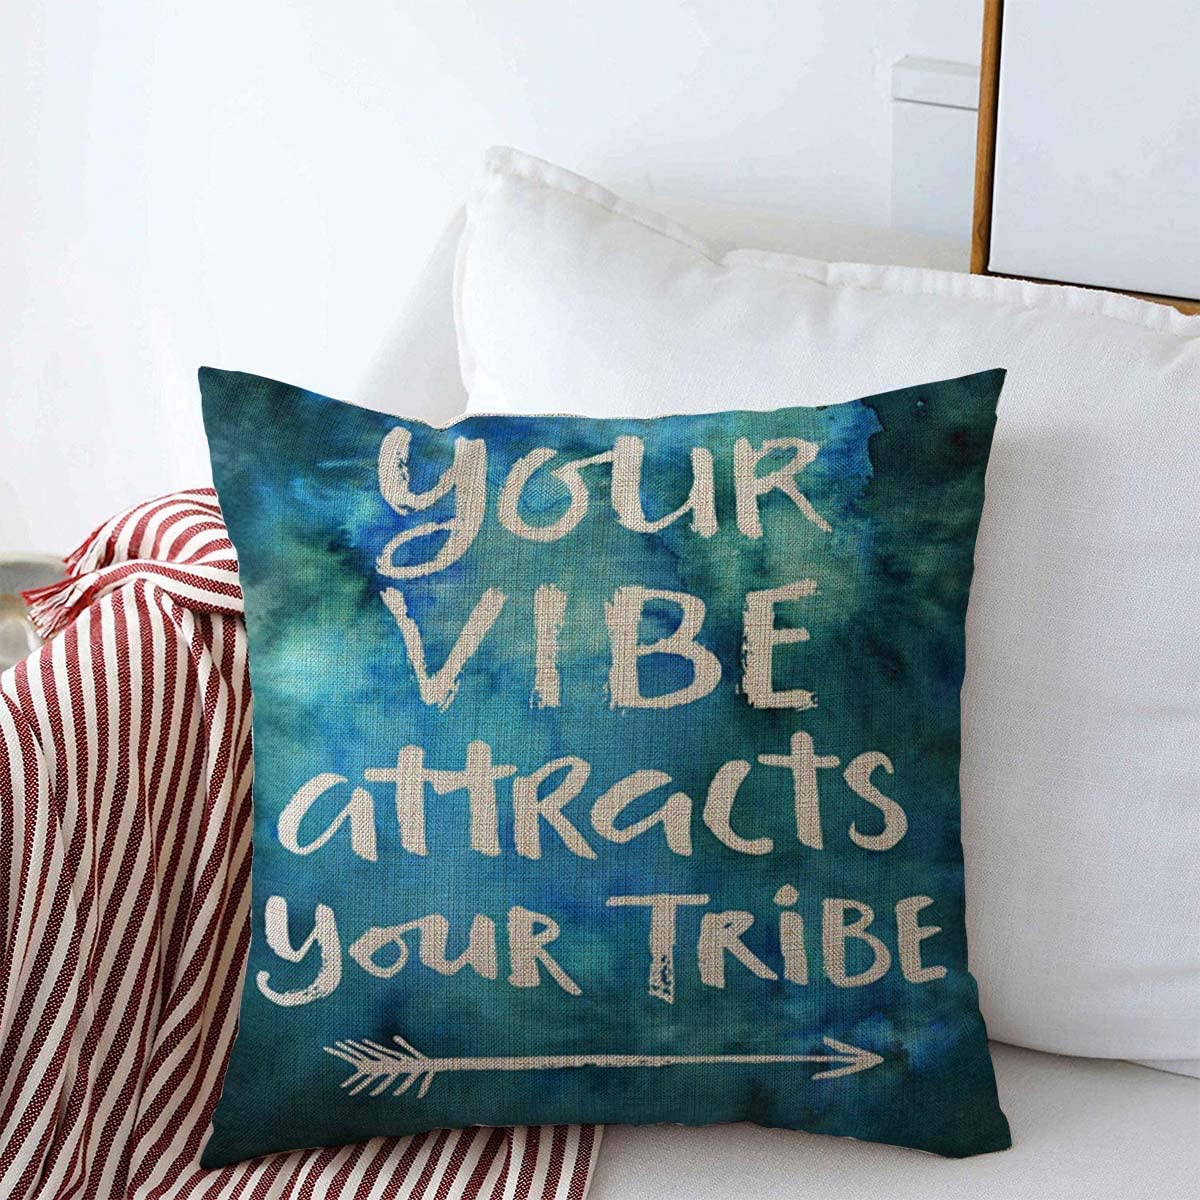 Amazon Com Staromay Throw Pillow Covers Text Watercolor Positive Your Vibe Attracts Tribe Quotes Hand Blue Best Abstract Amazing Artistic Cushion Case Linen Square Pillowcase For Home Decor 18 X 18 Home